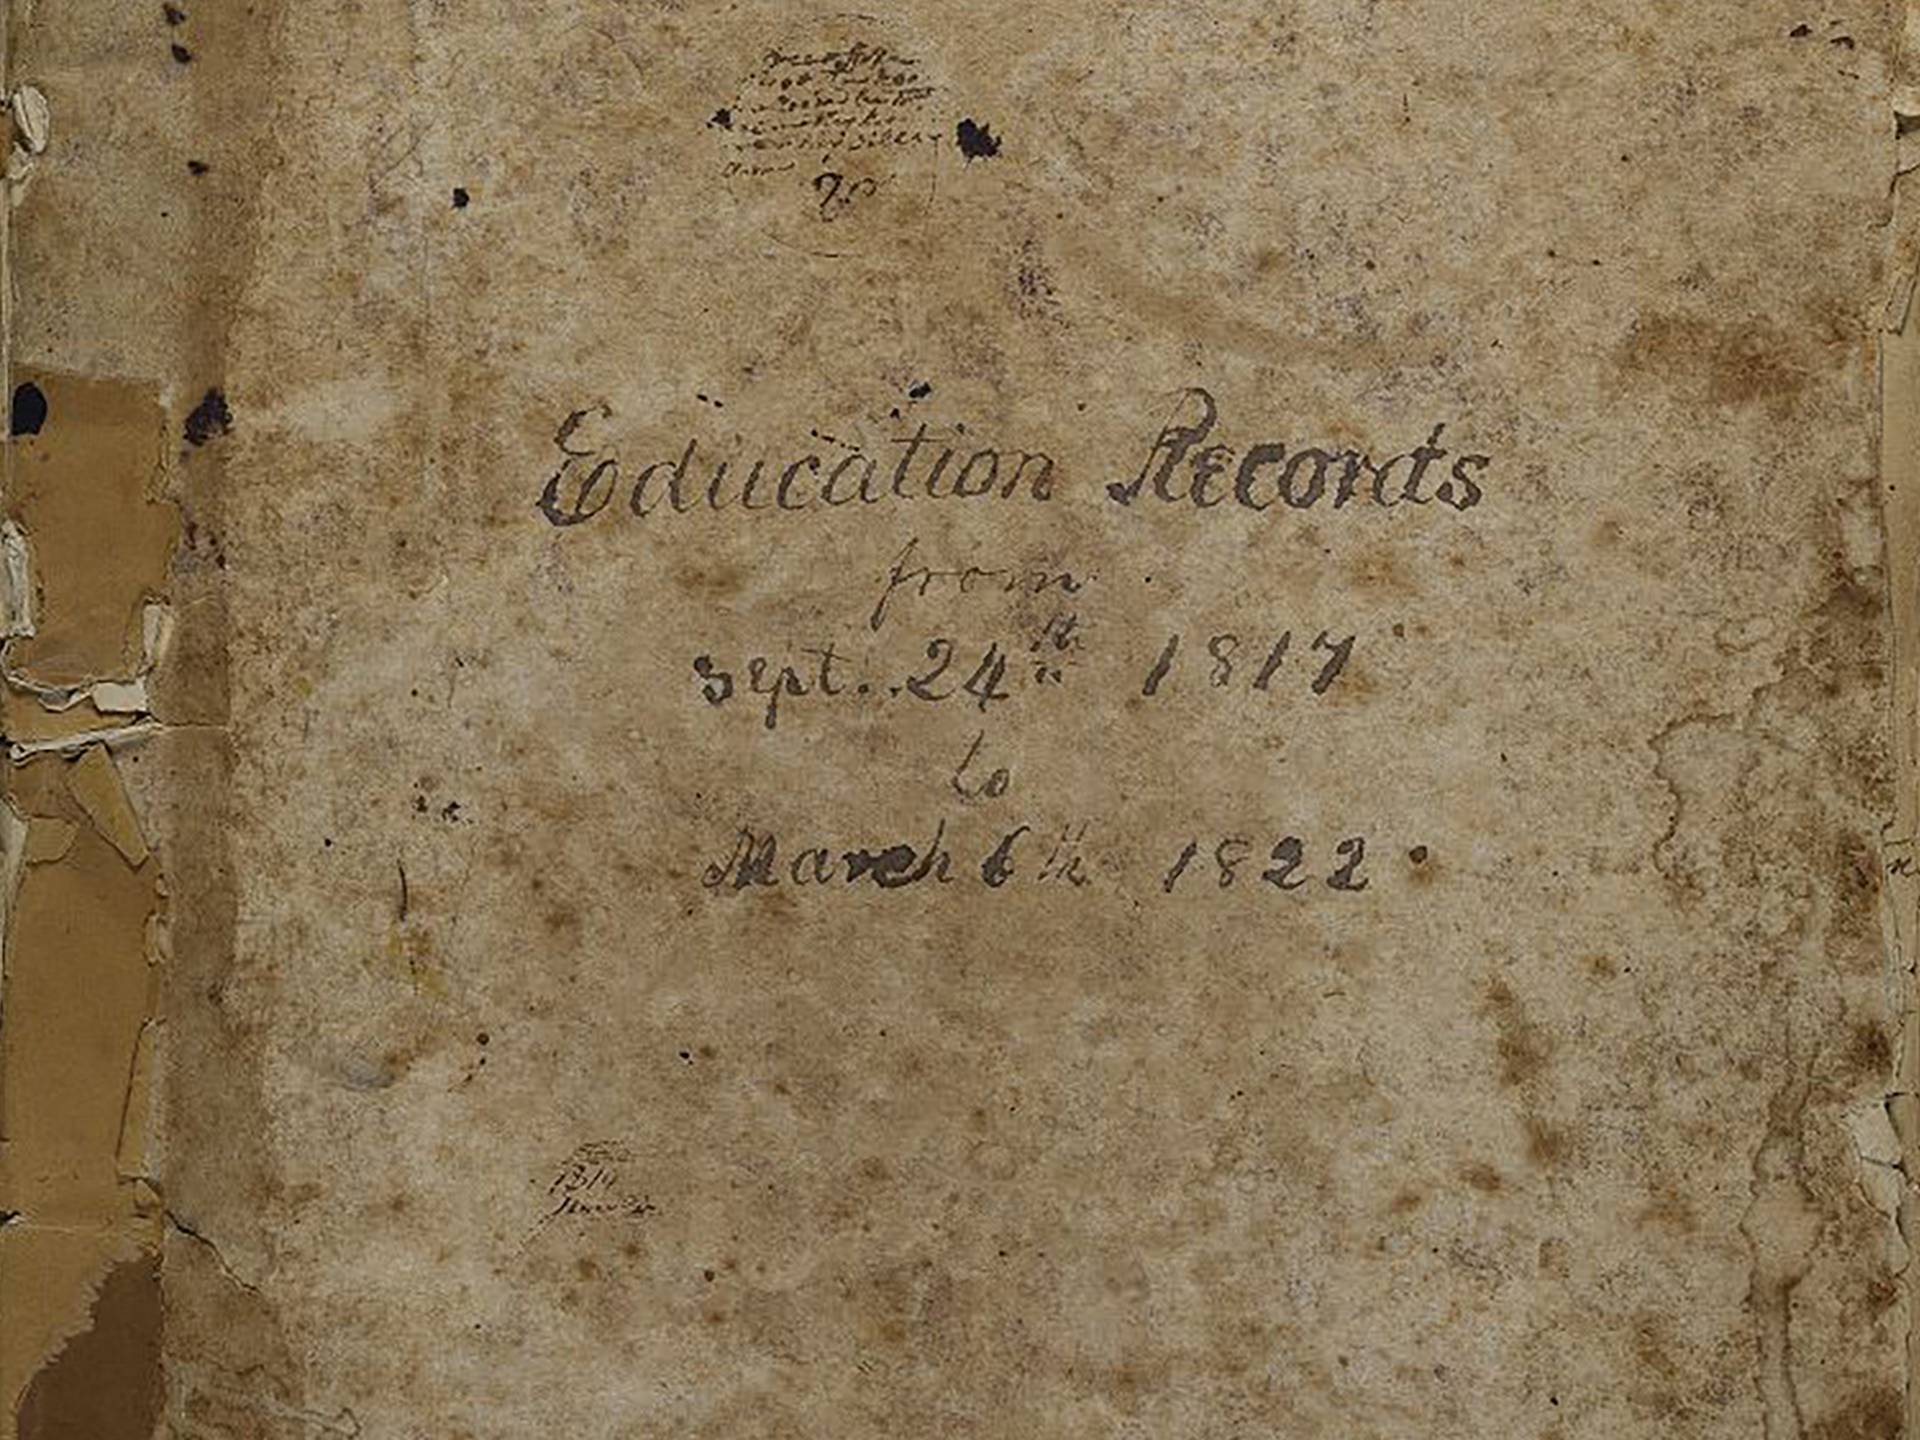 BESSNY Education Records ledger cover